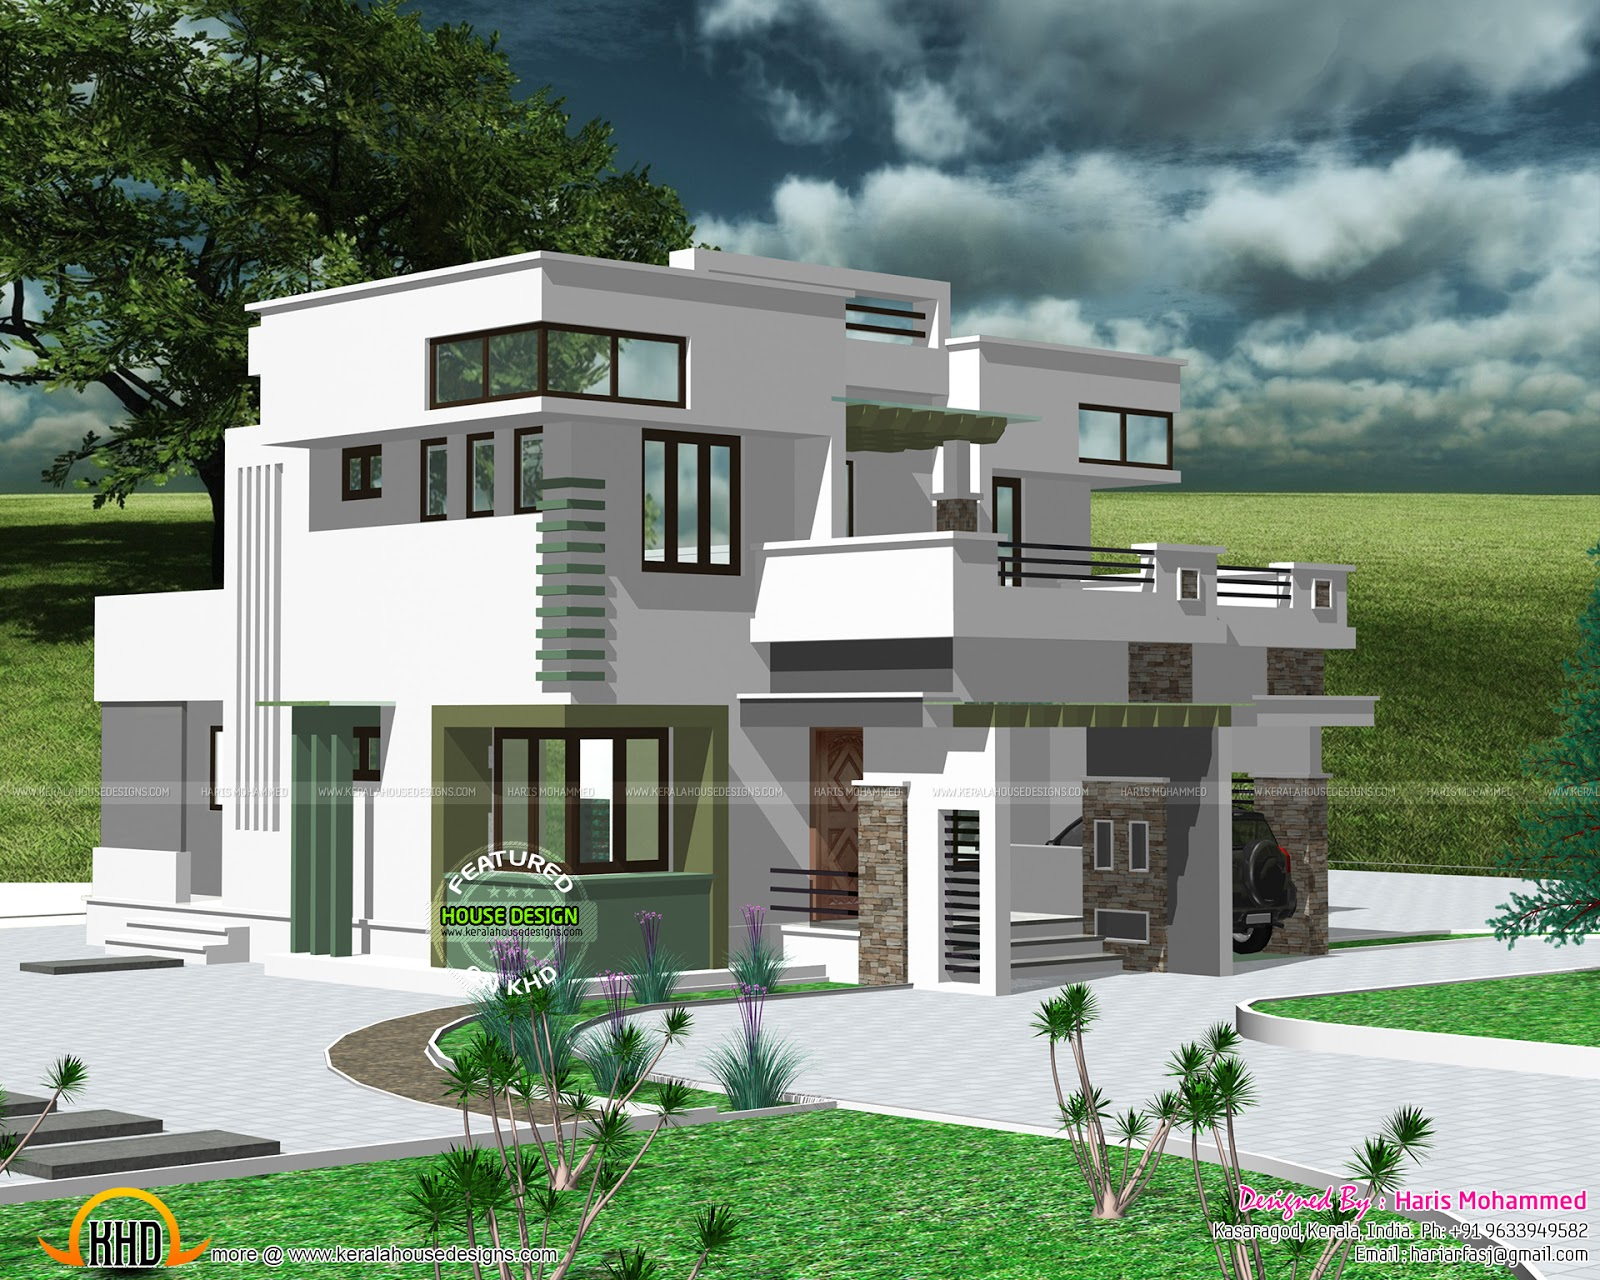 1930 sq-ft Modern flat roof house - Kerala home design and ...